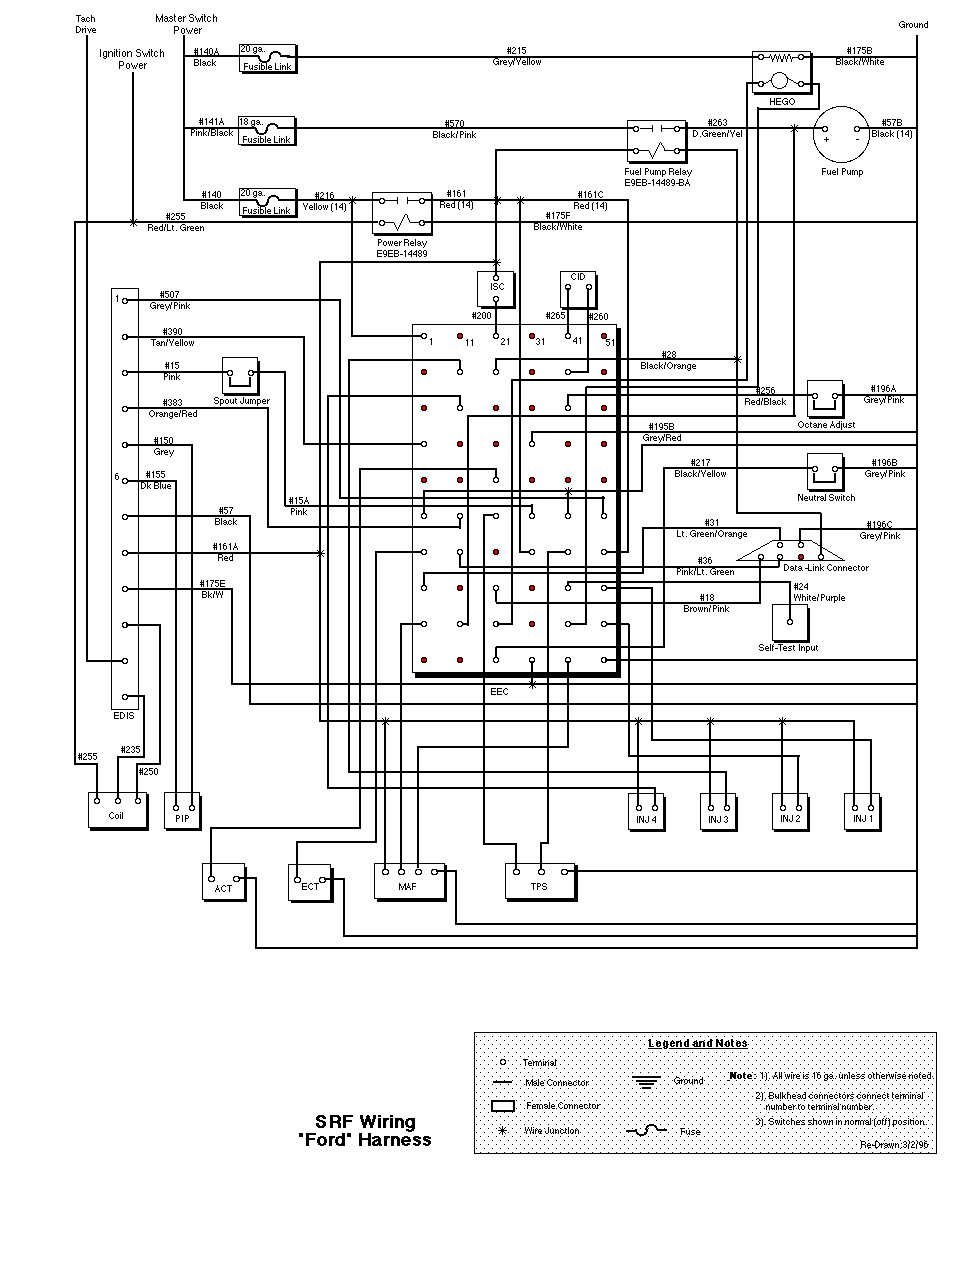 L9000 Wiring Schematic Simple Diagram Shematics 1965 Ford F100 Electrical Srf Diagrams Ltl 9000